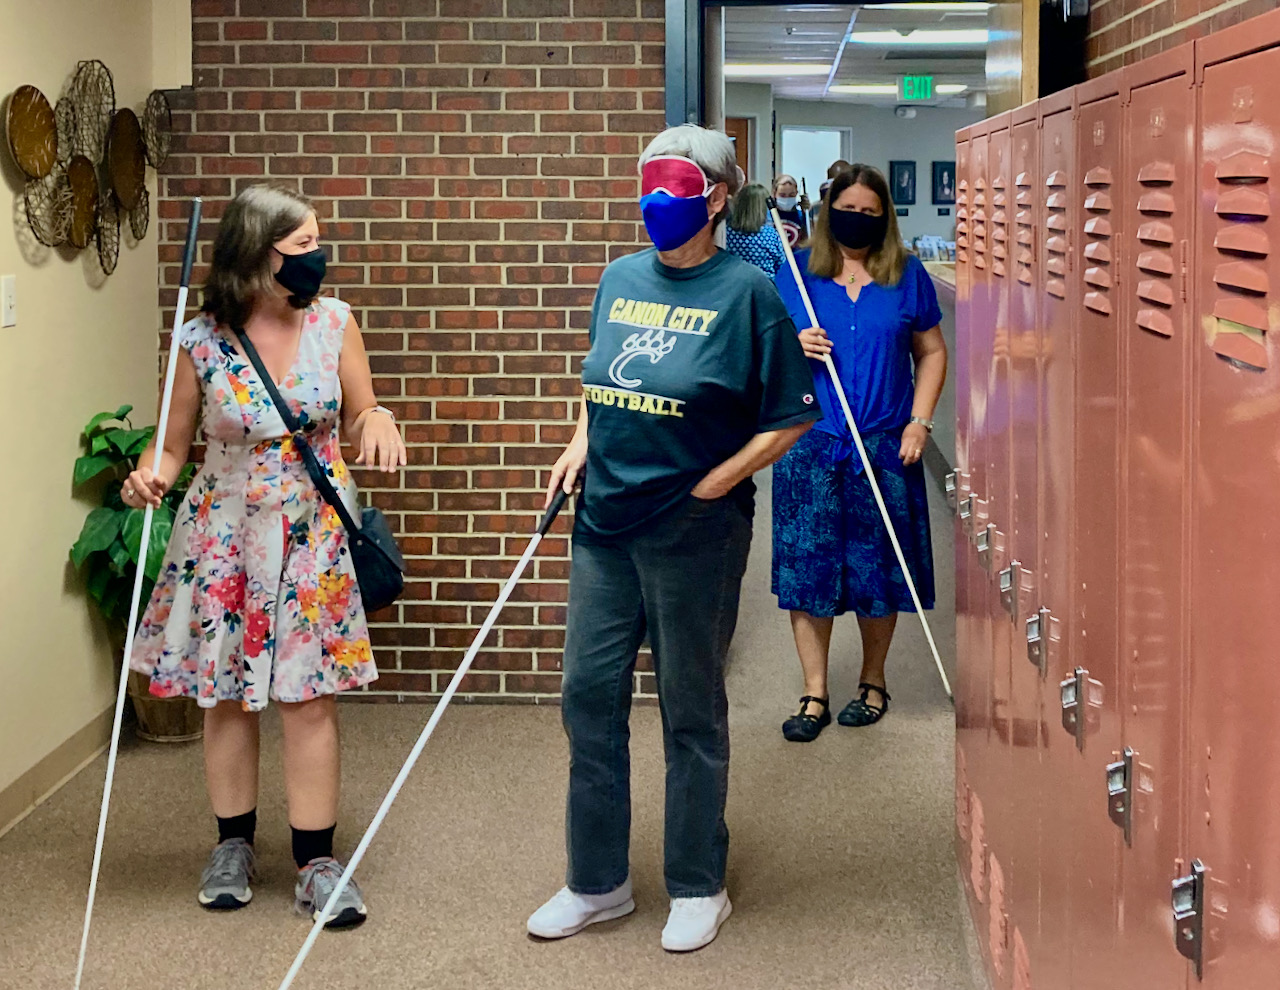 a senior woman navigates the hallway among other students with her instructor following